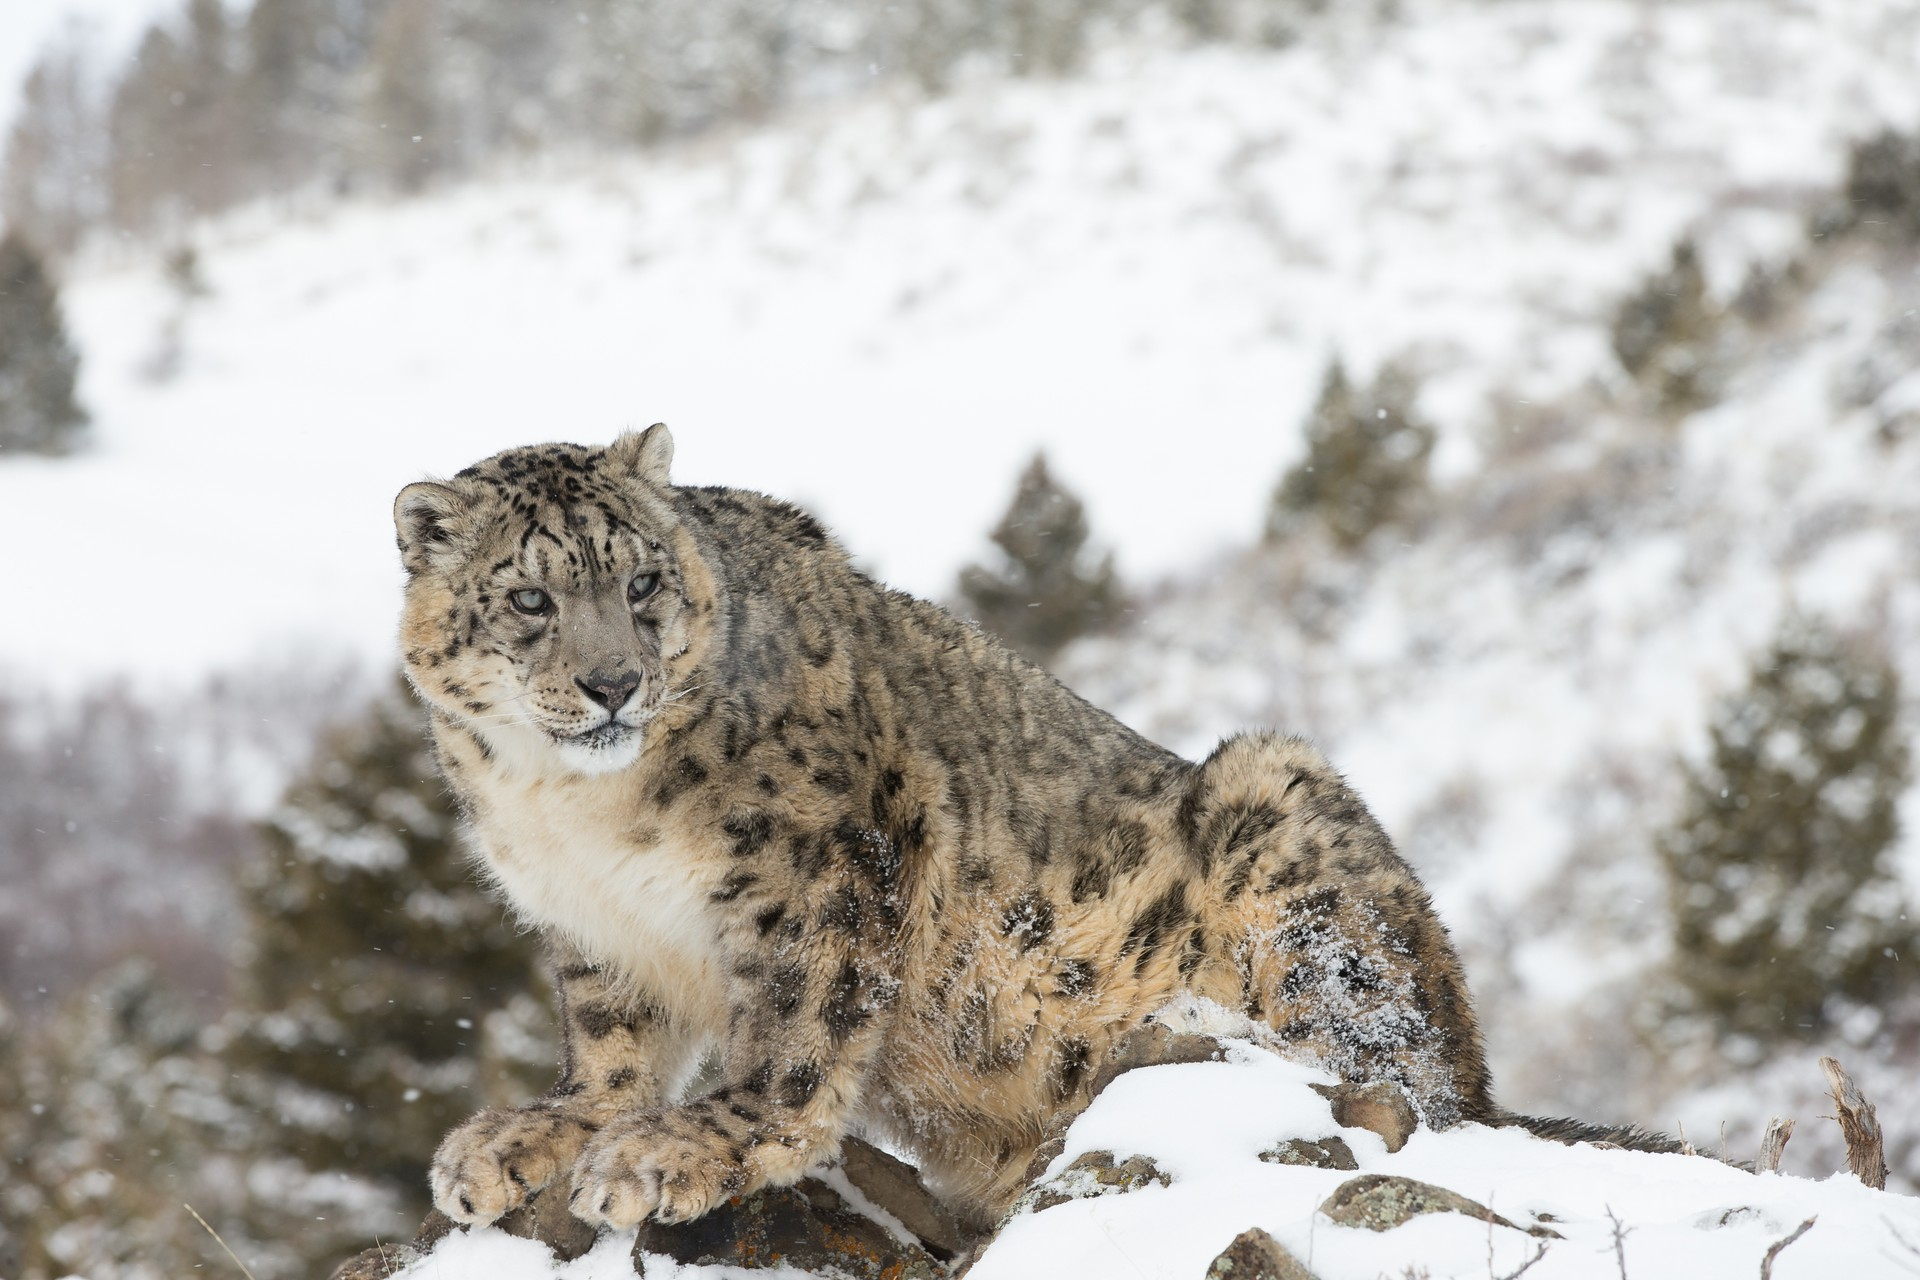 Snow leopard in Himalayas